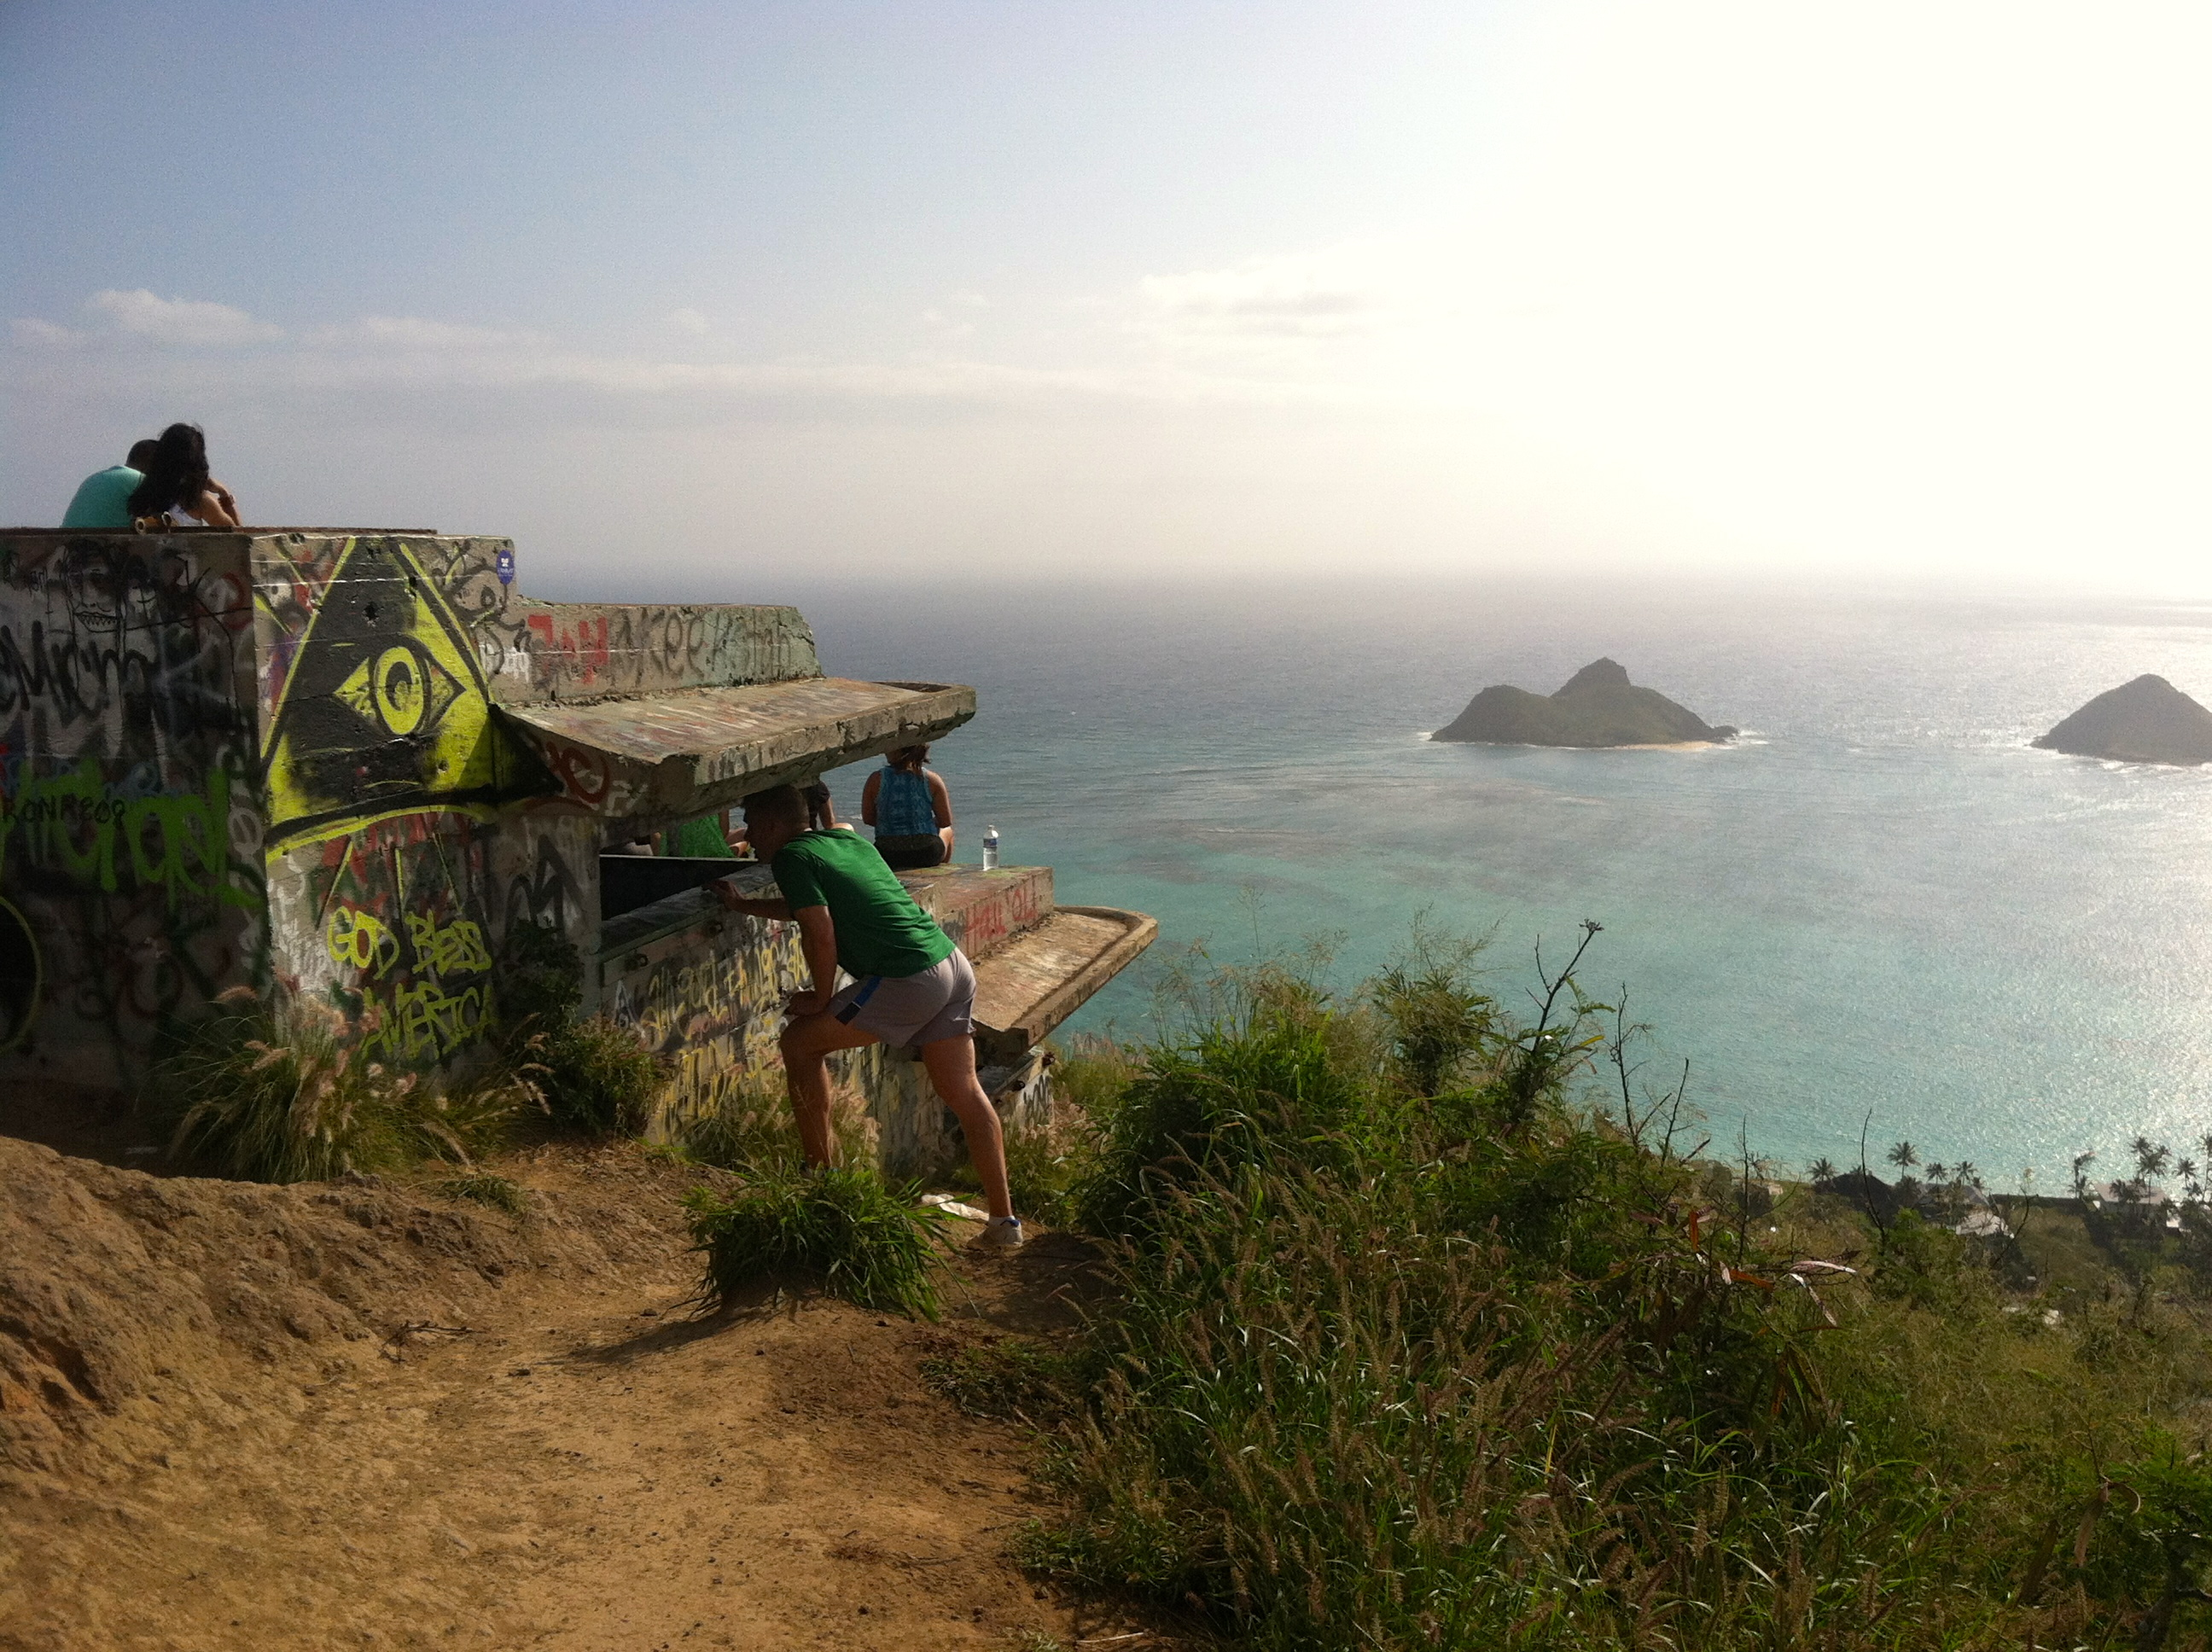 Pillbox2